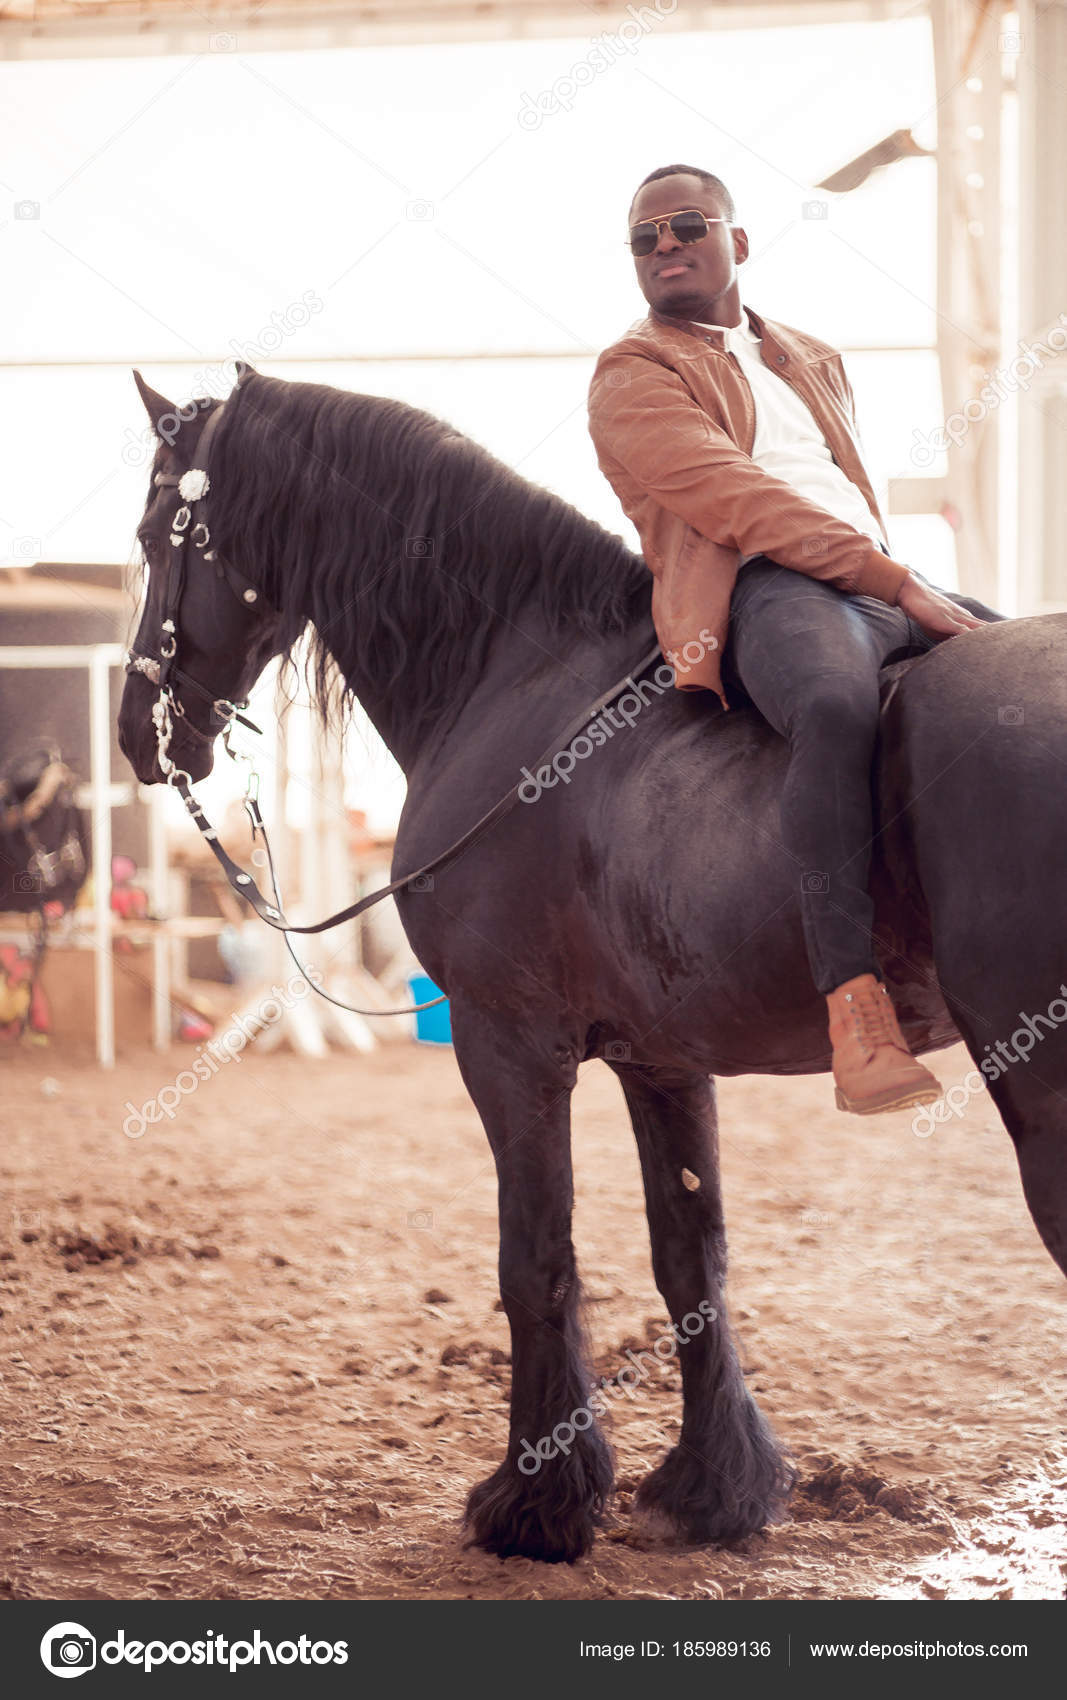 Man Riding Brown Horse On Countryside Stock Photo C Ufabizphoto 185989136